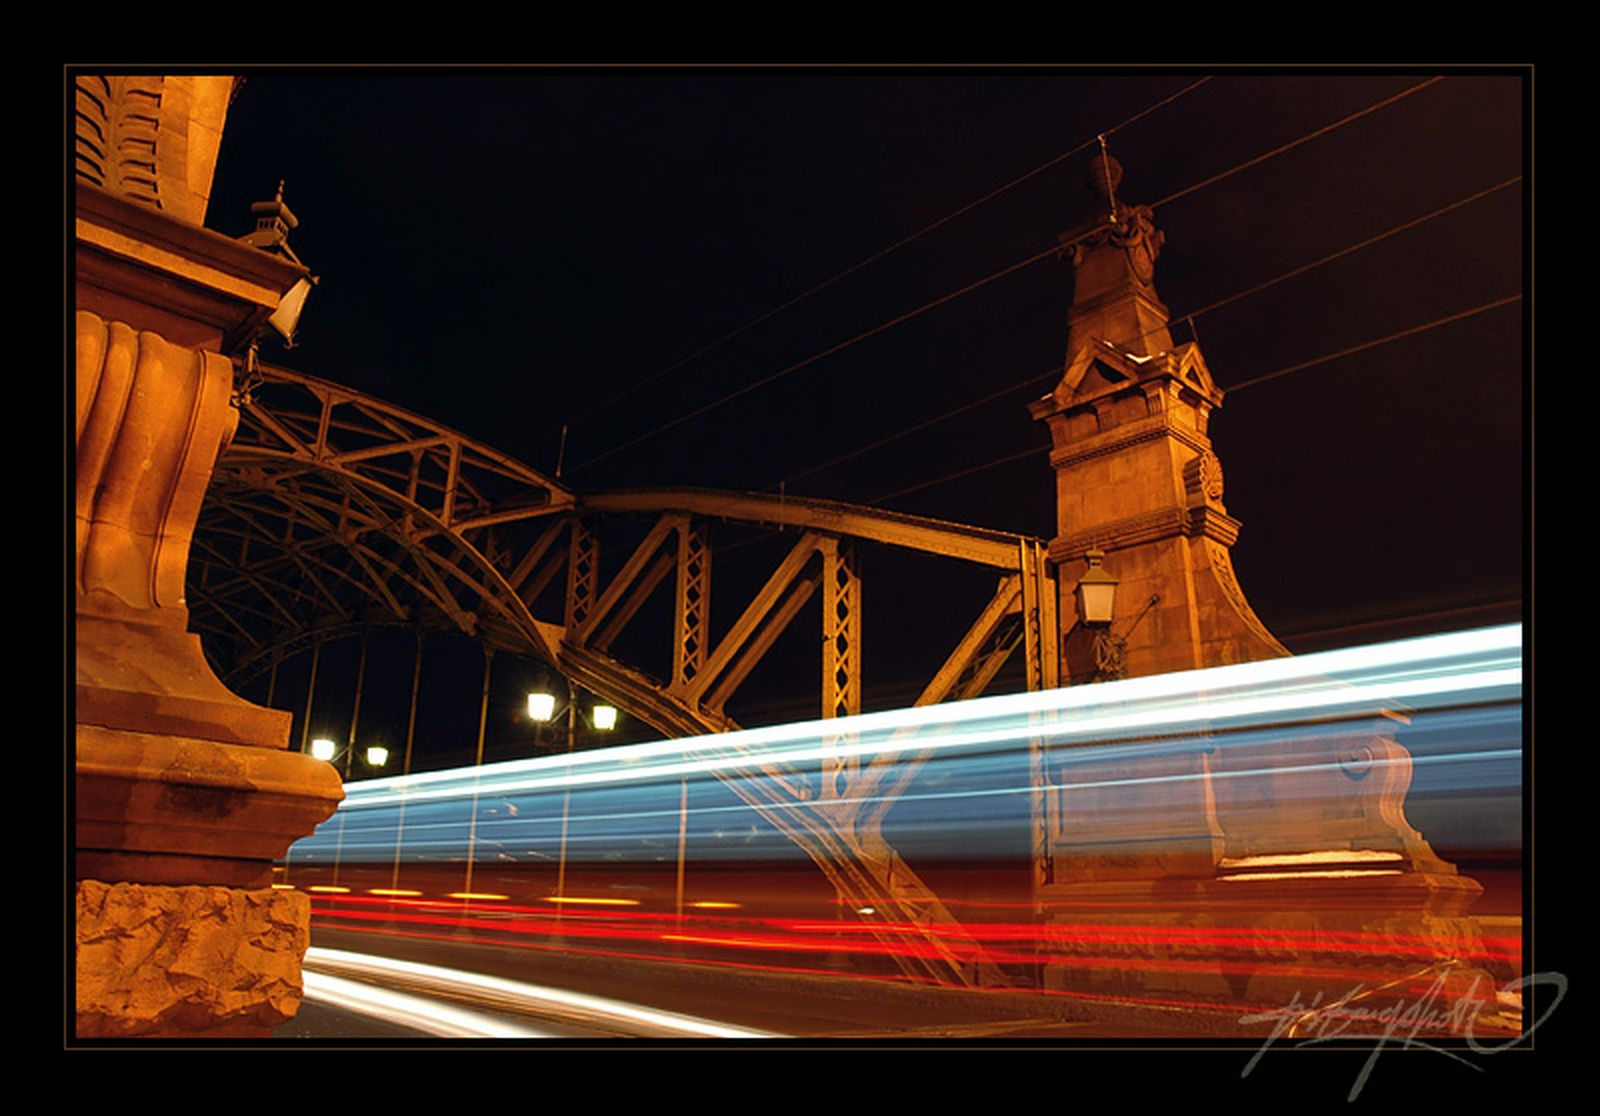 Bridge and the high-speed train - wallpapers - the theme of